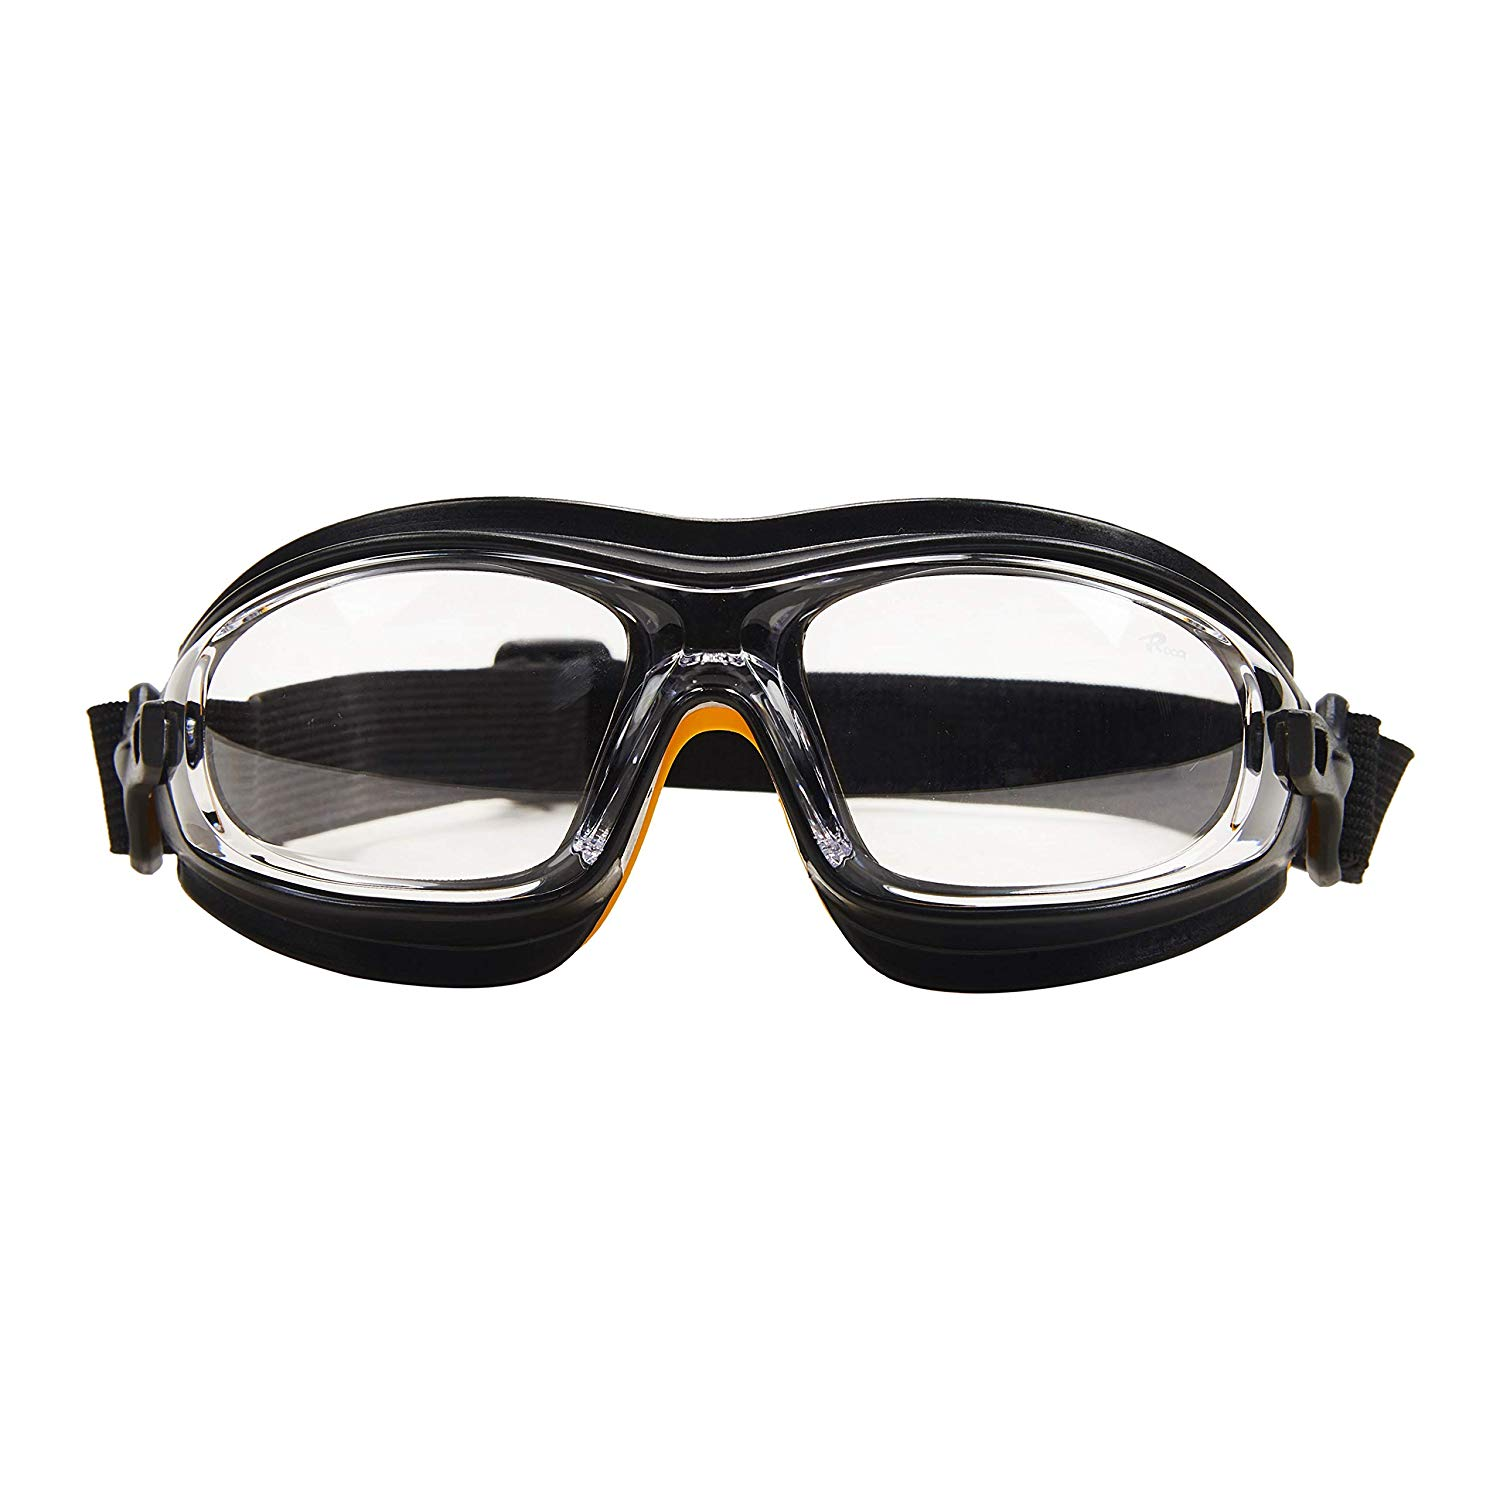 a8c89e3daf5 Get Quotations · Holulo ANSI Z87 CE Certificate Safety Glasses Concealer  Clear Anti-Fog Dual Mold Safety Goggle